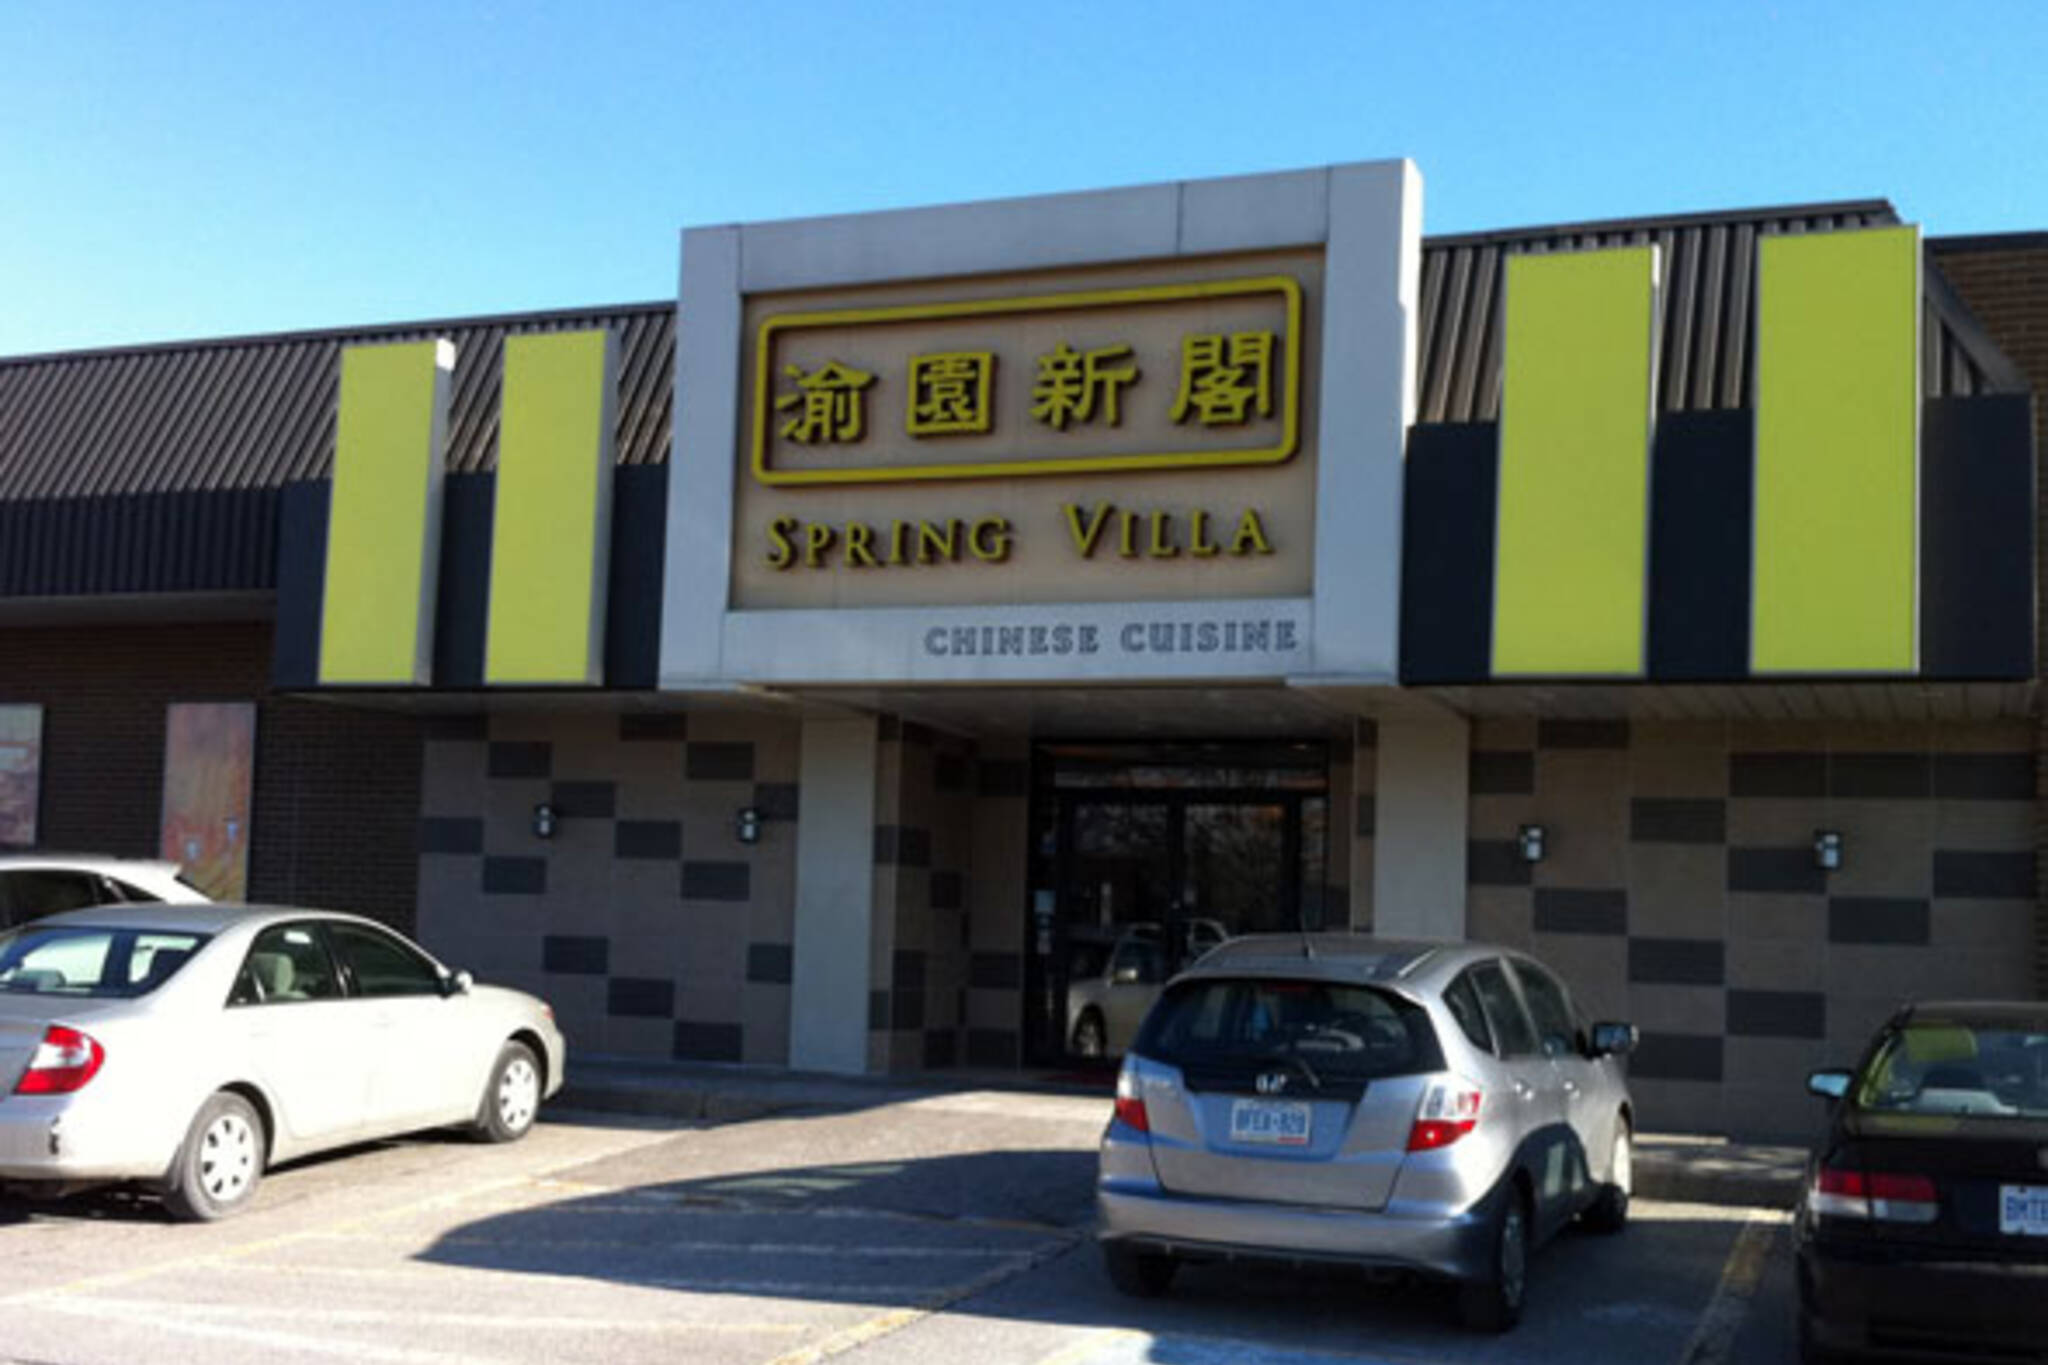 Spring Villa Chinese Cuisine